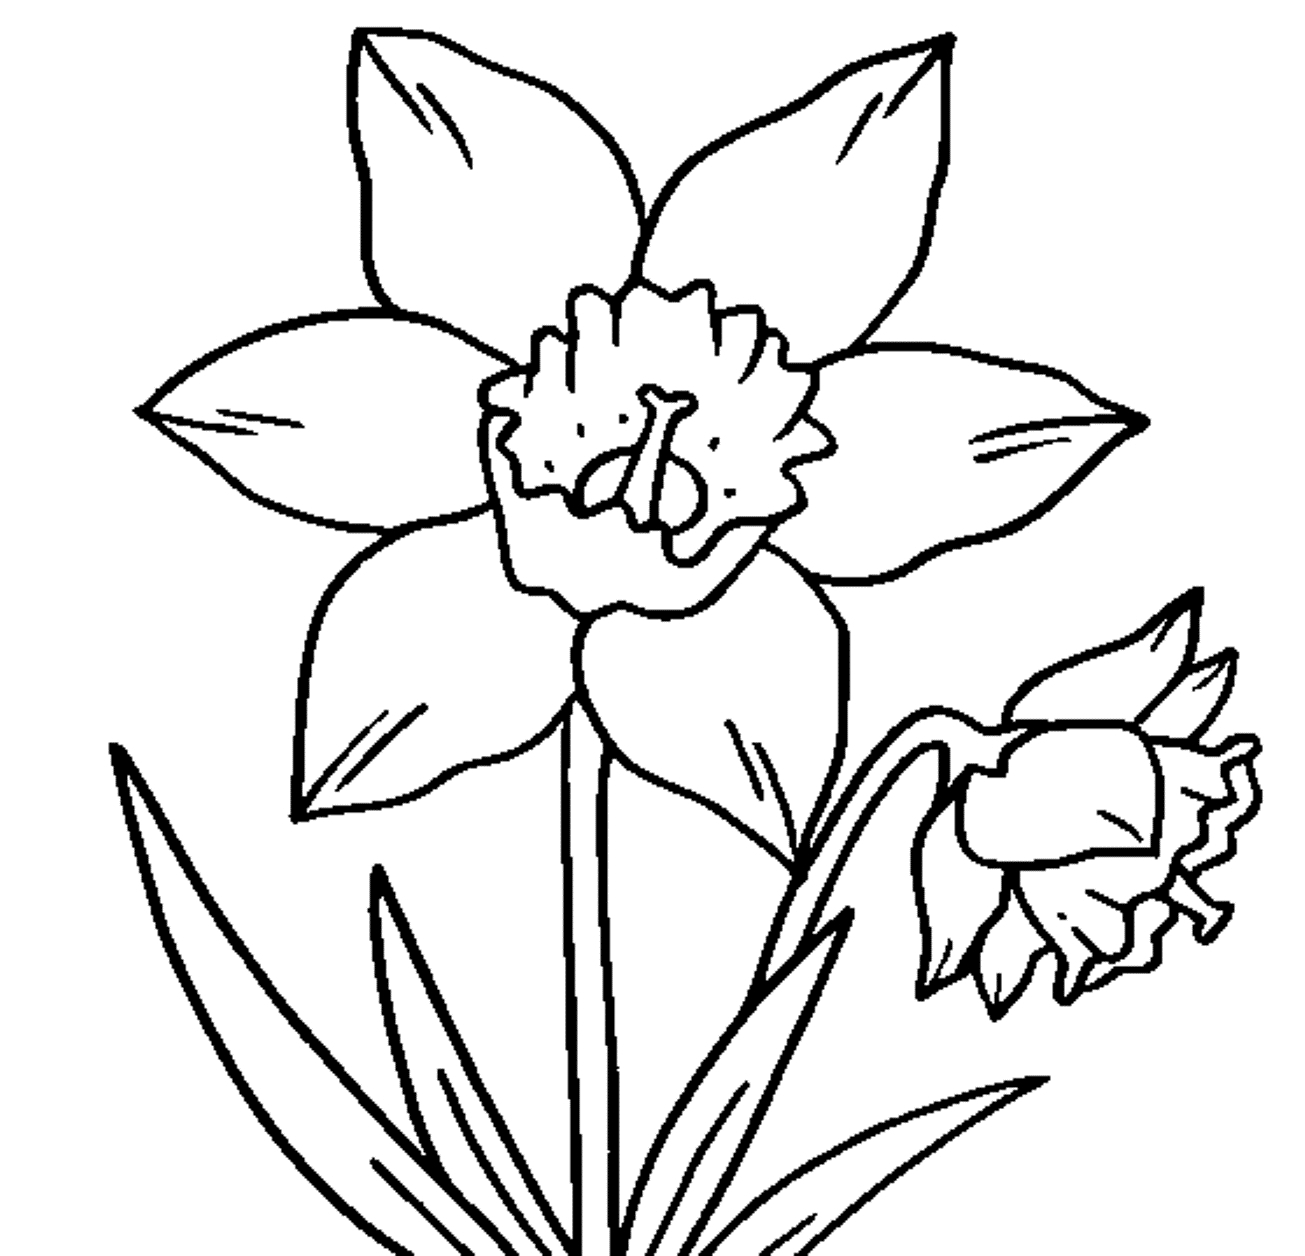 Special Daffodil Coloring Page Fresh Design Printable Sheet Gallery Of New Daffodil Flower Coloring Pages Collection Printable